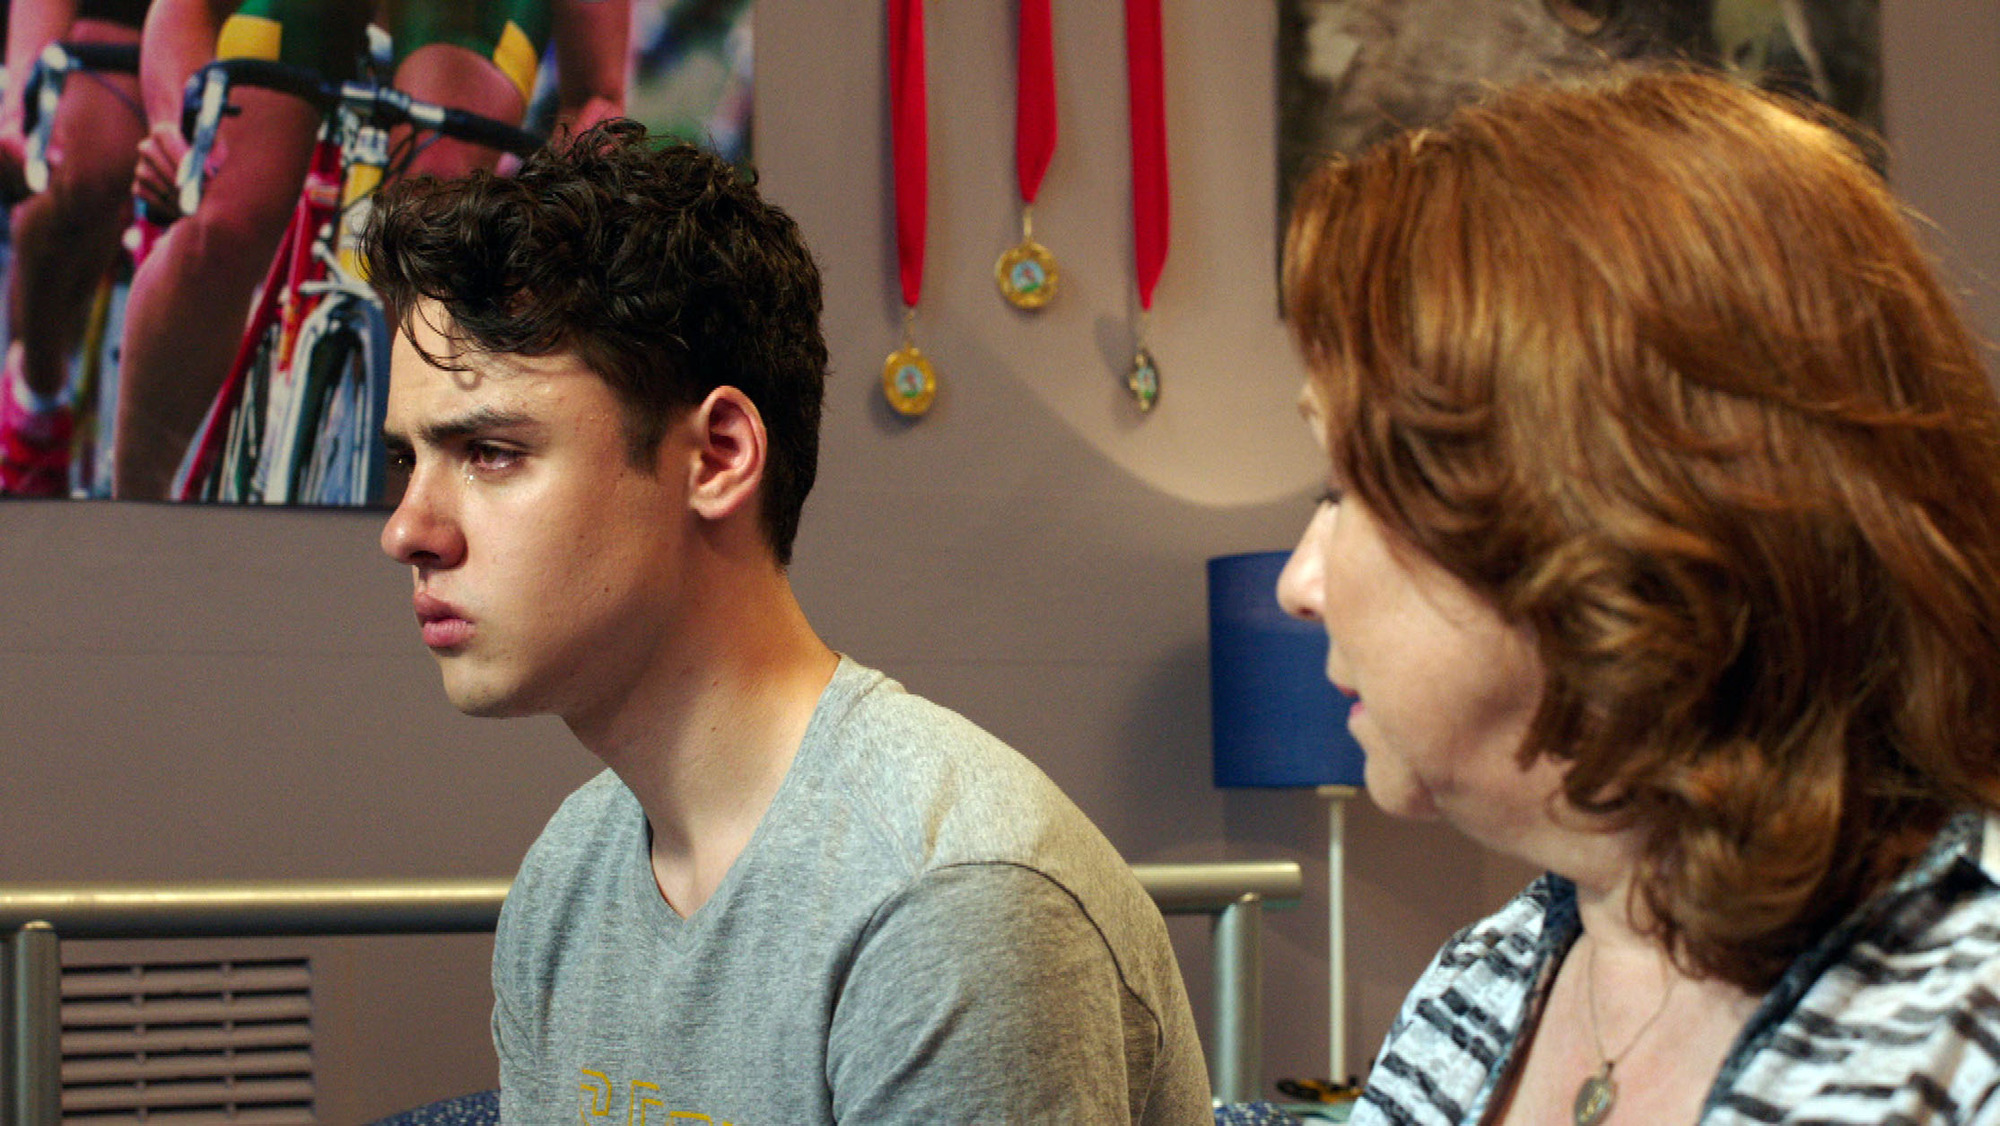 Waterloo Road final series continues: 9 teasers from episode 16